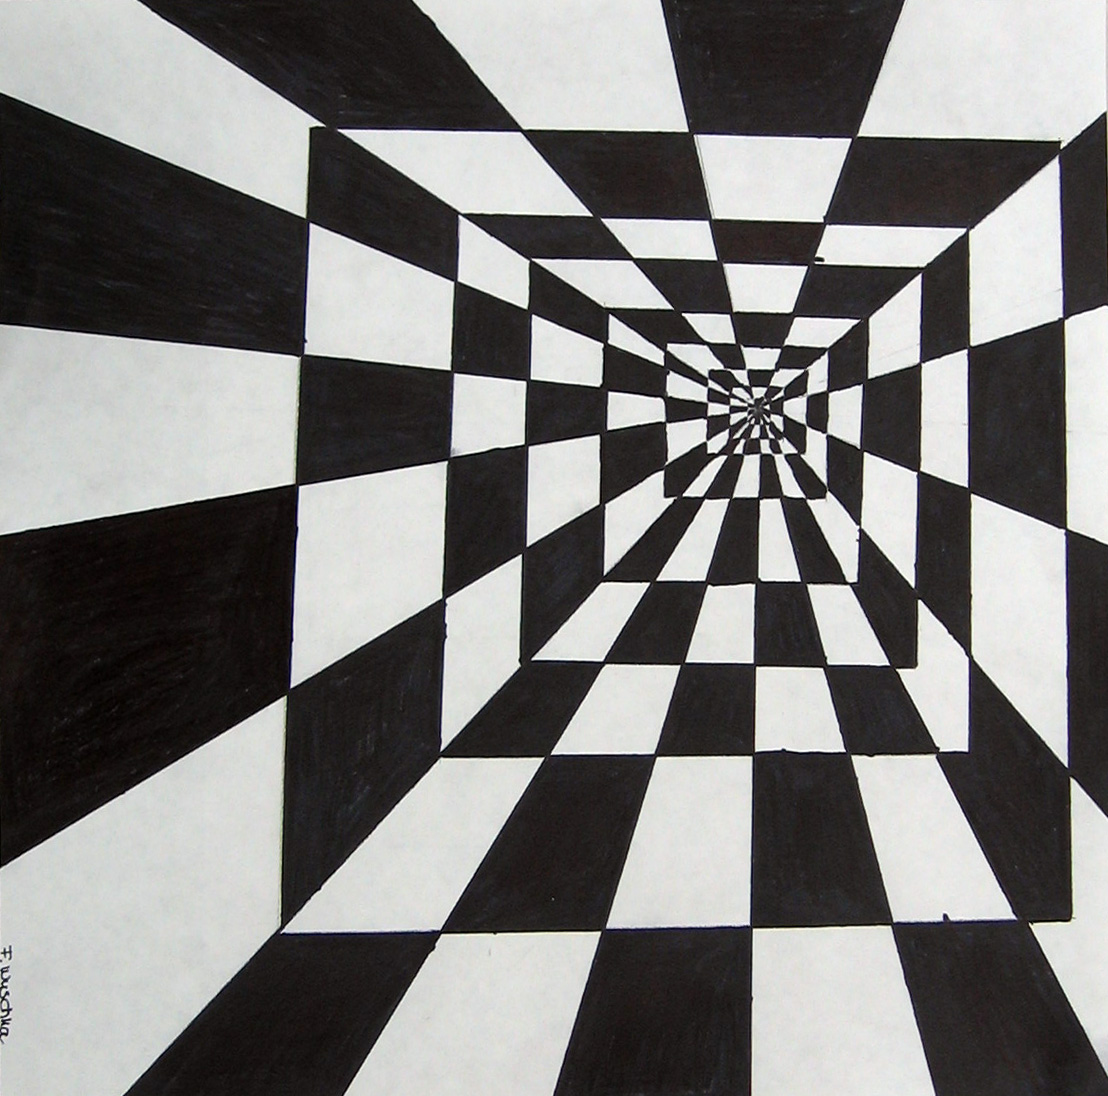 optical illusion drawings illusions drawing tunnel 3d class paper pencil ohs franzie источник uploaded user similar posts